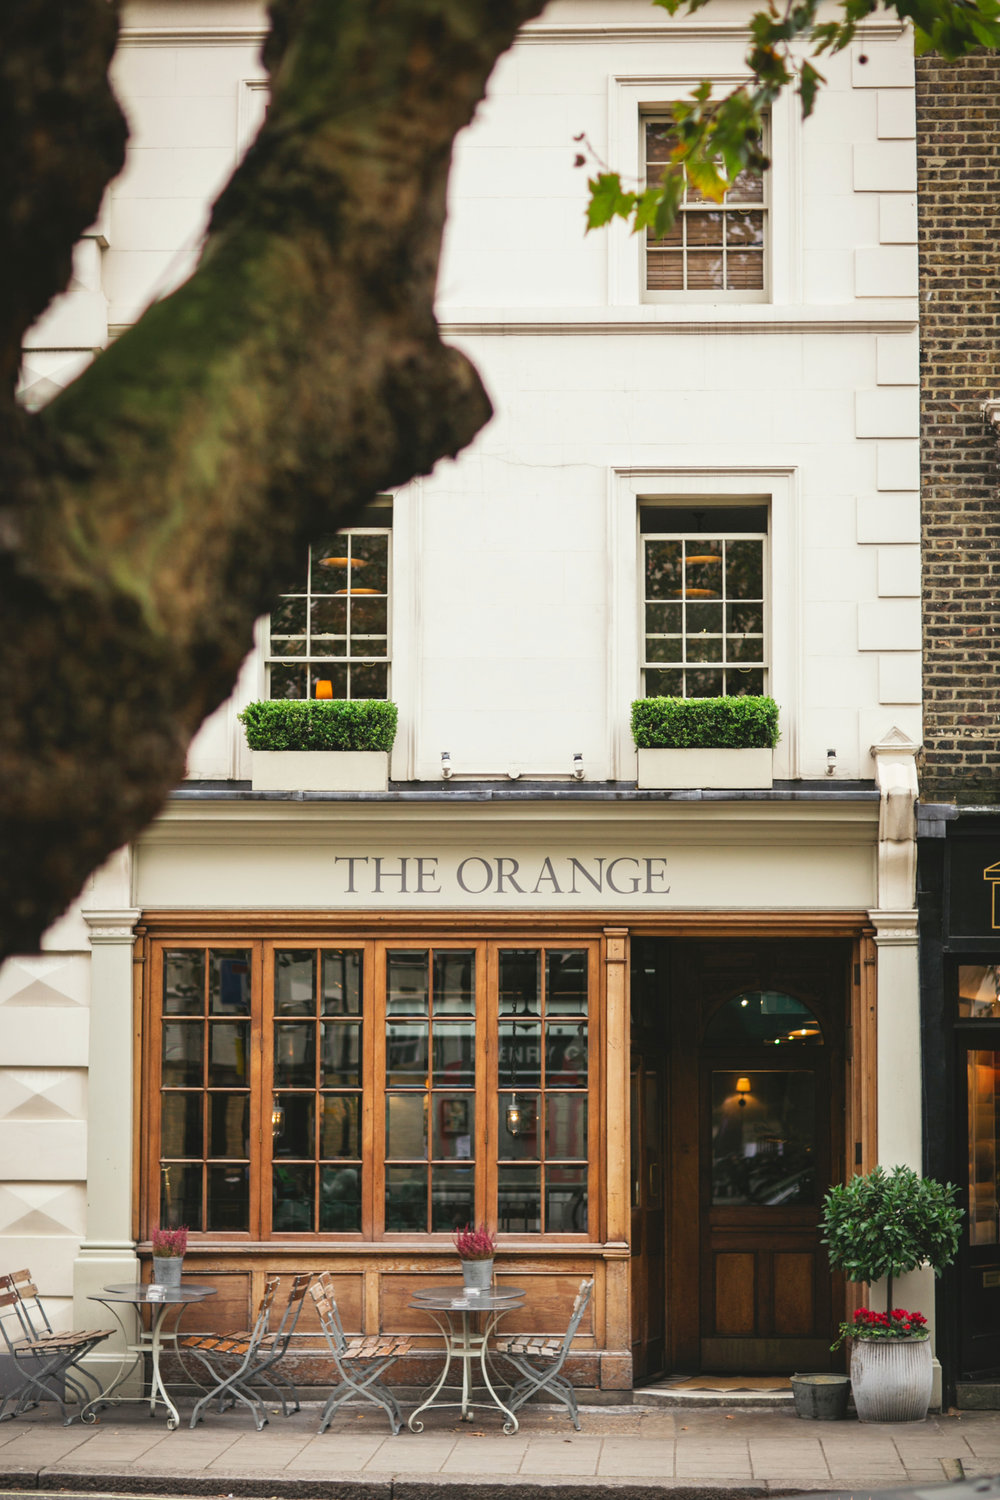 The Orange, Pimlico Road